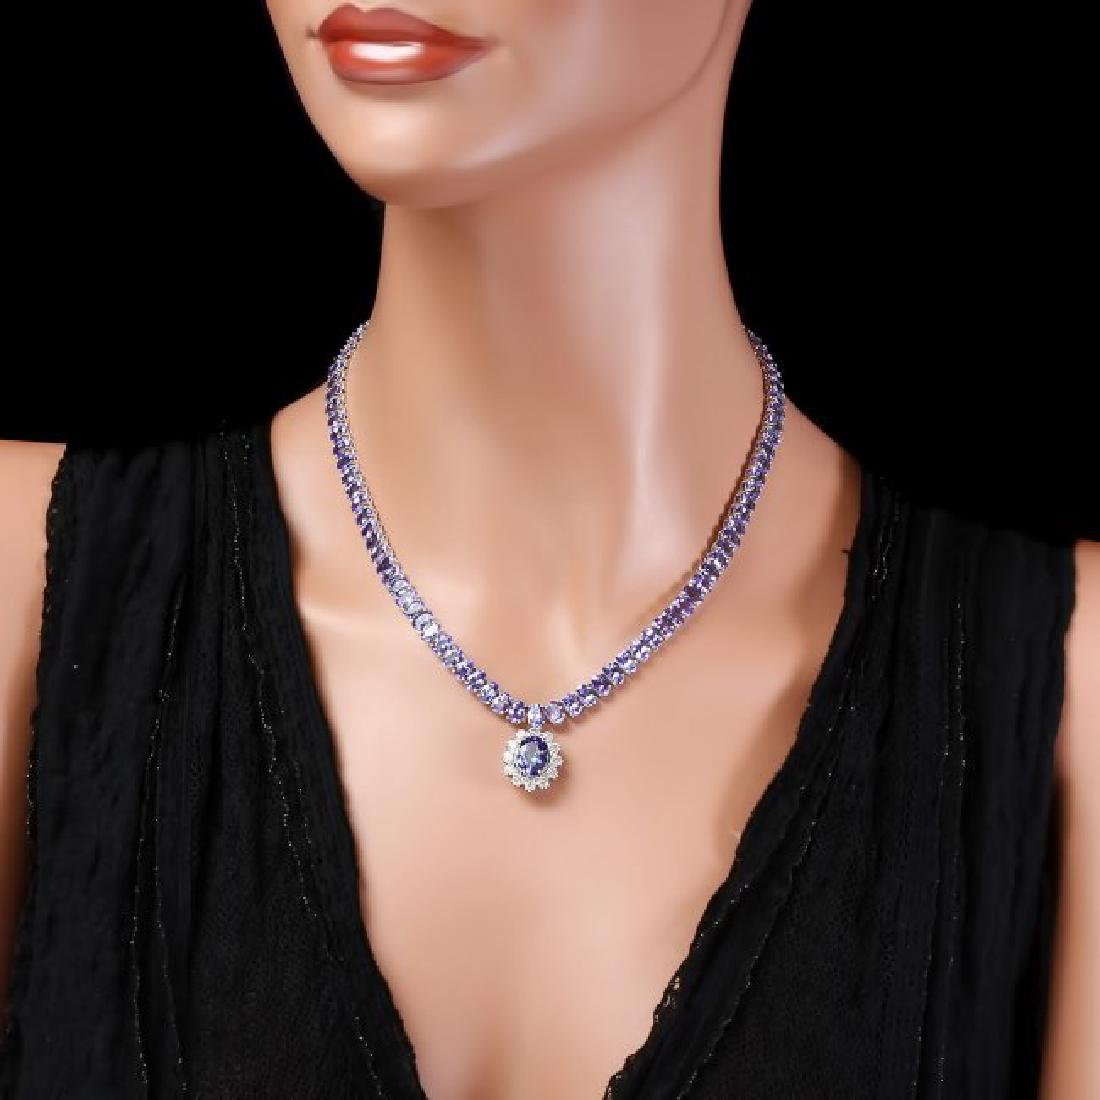 14k Gold 49ct Tanzanite 1.50ct Diamond Necklace - 4